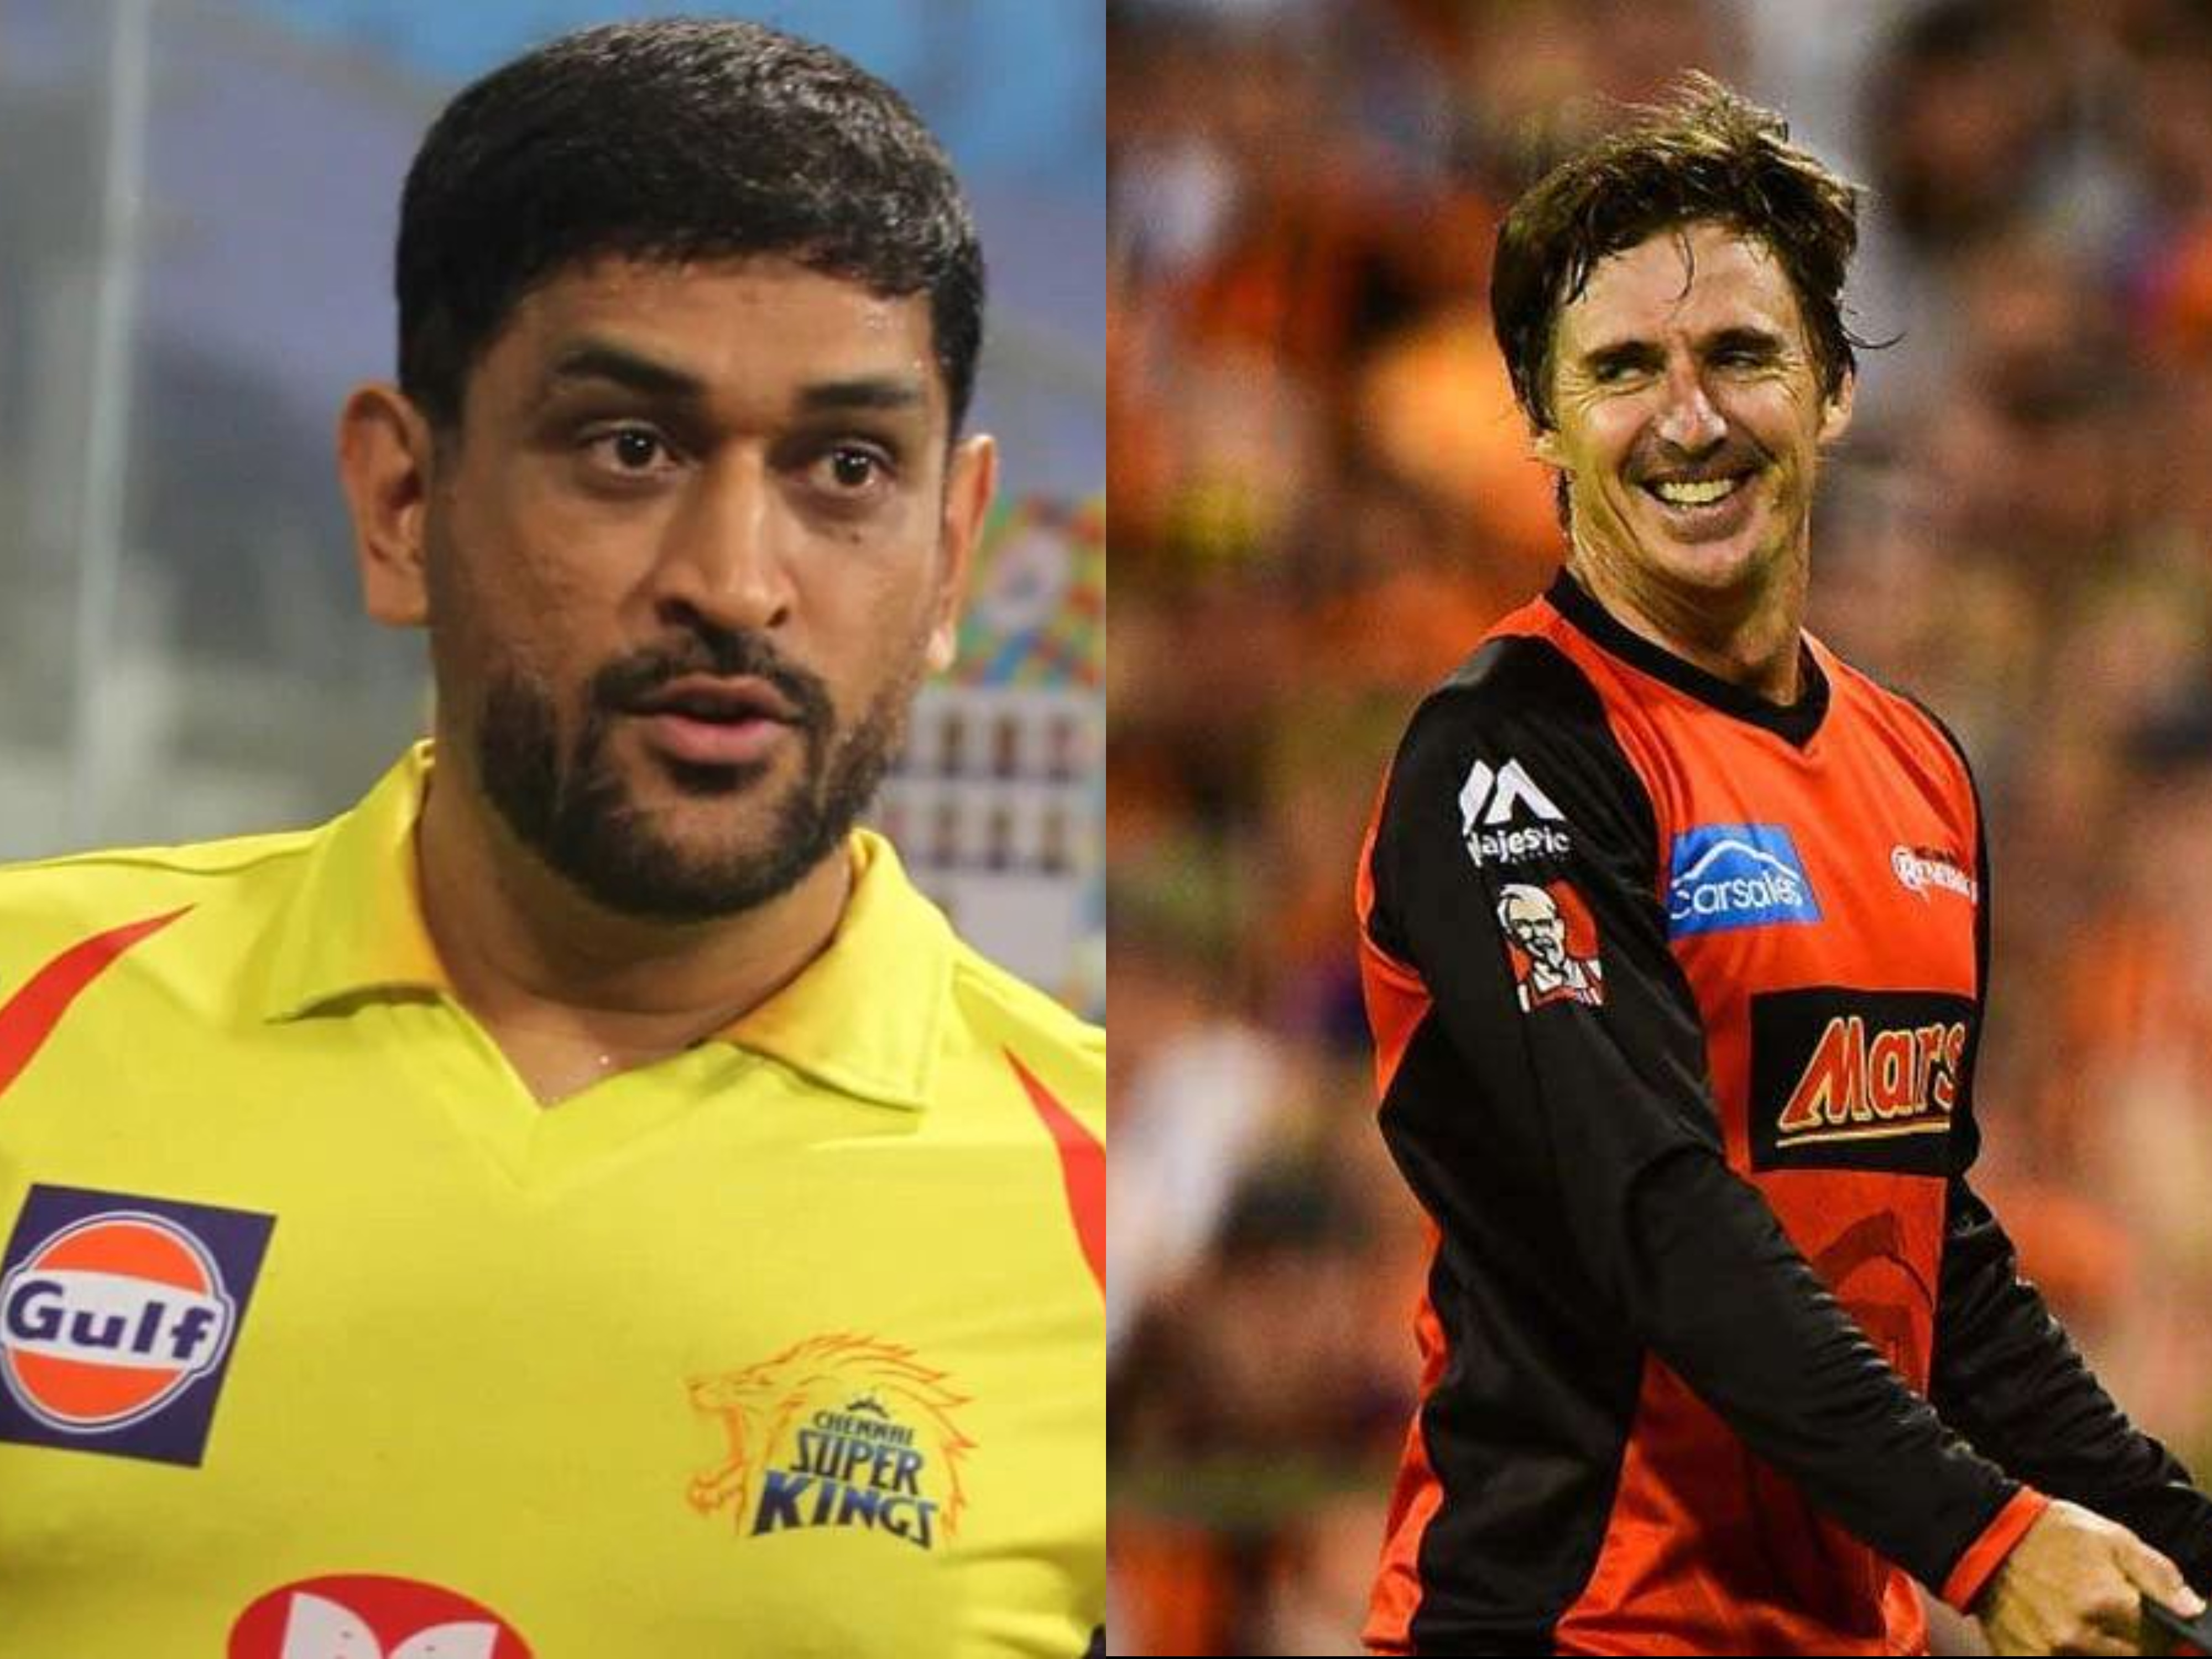 IPL2020: Brad Hogg asks MS Dhoni to make 'No excuses' after CSK's loses to RR